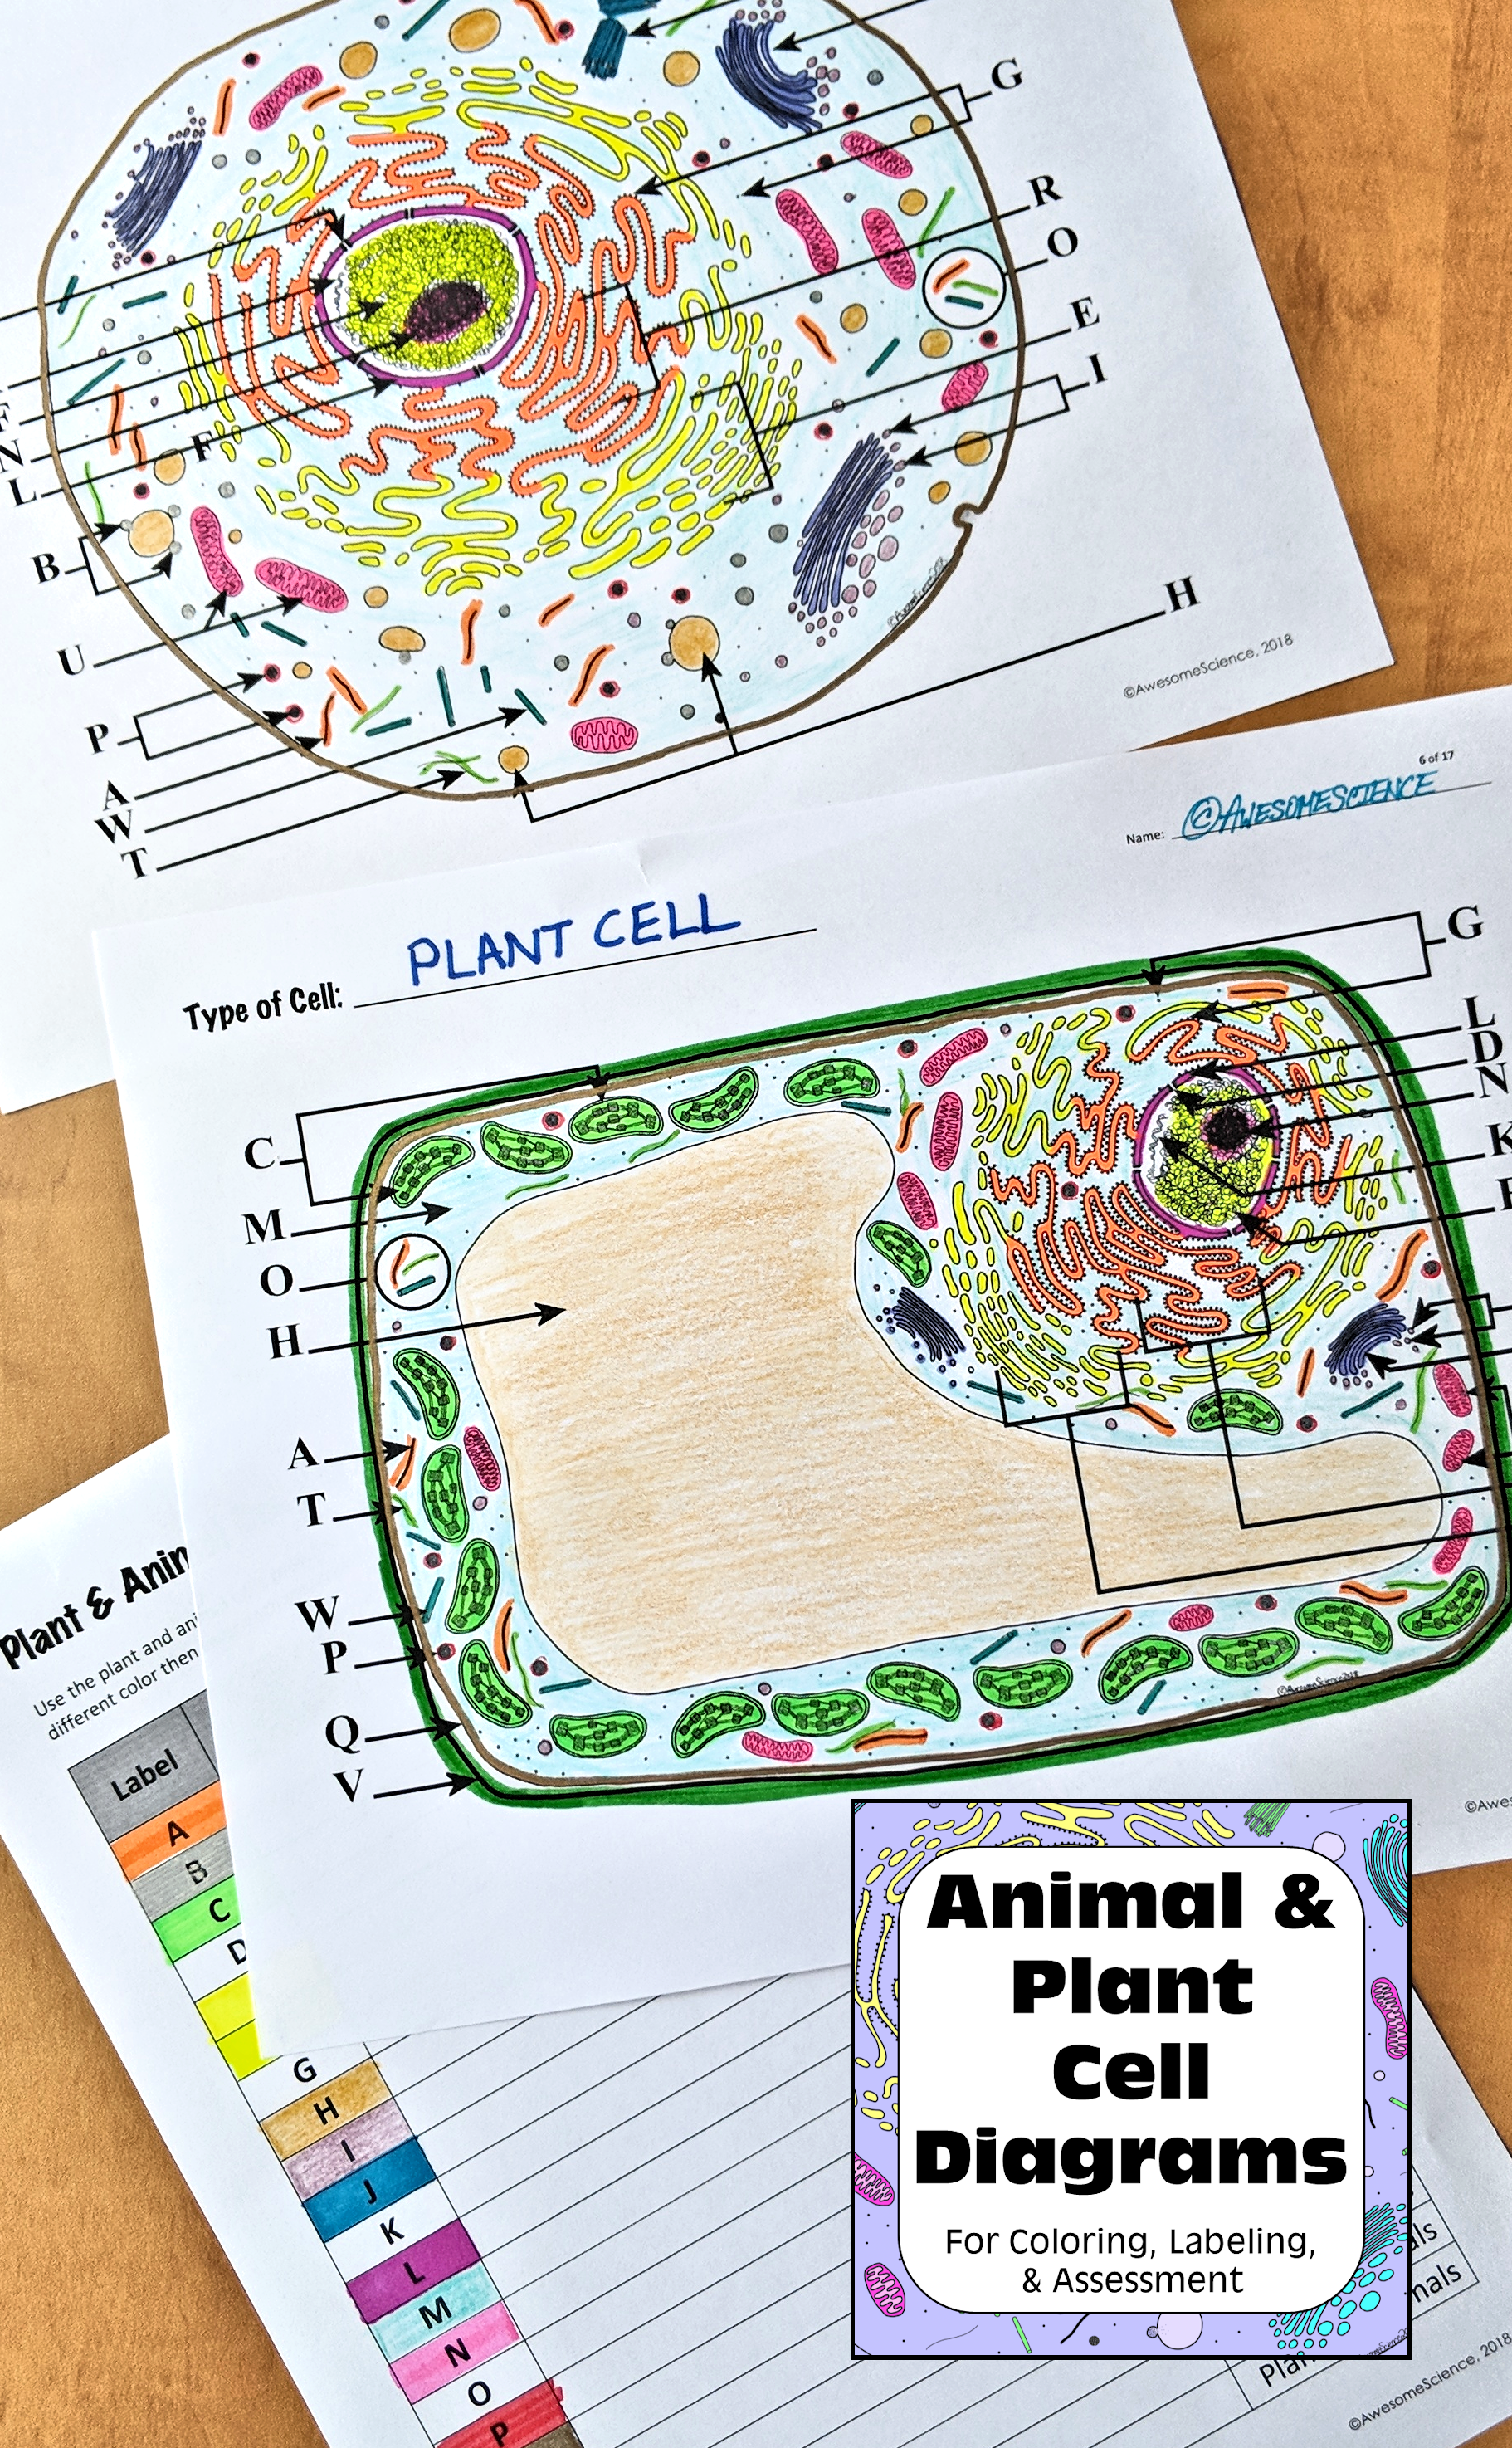 Plant Cell Animal Cell Diagrams Perfect For Middle School Or High School Biology Cell Membrane Pla Cell Diagram Plant Cell Diagram Plant And Animal Cells [ 2949 x 1822 Pixel ]